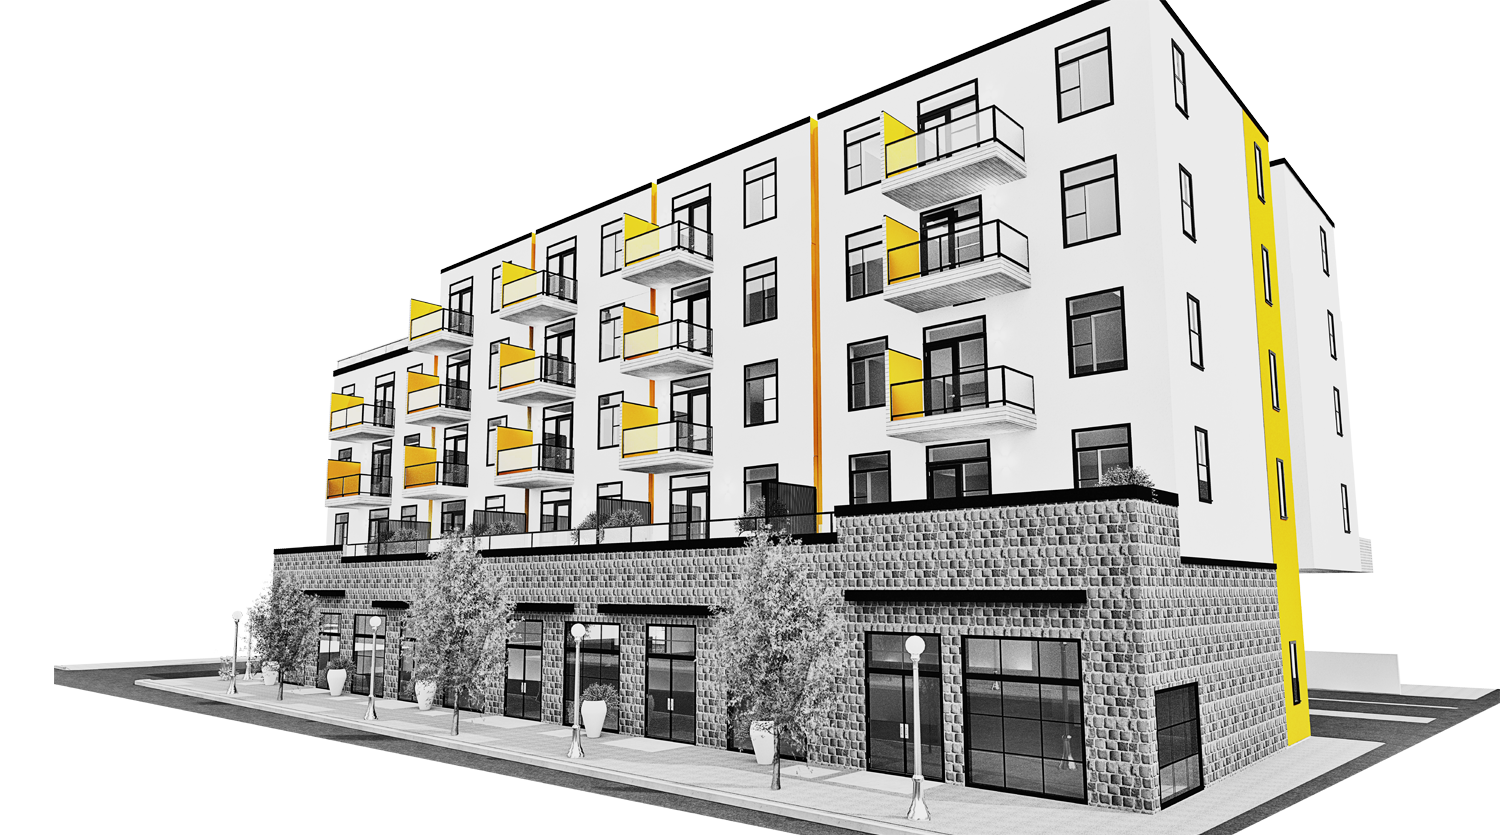 CLASS 'A' RETAIL OPPORTUNITY - InDevelopments Corp is currently seeking expressions of interest from high quality tenants to lease retail space in The Block on 4th. Preference will be given to businesses complimentary to the Mission neighbourhood and only uses compatible with the residential nature of the project will be considered.